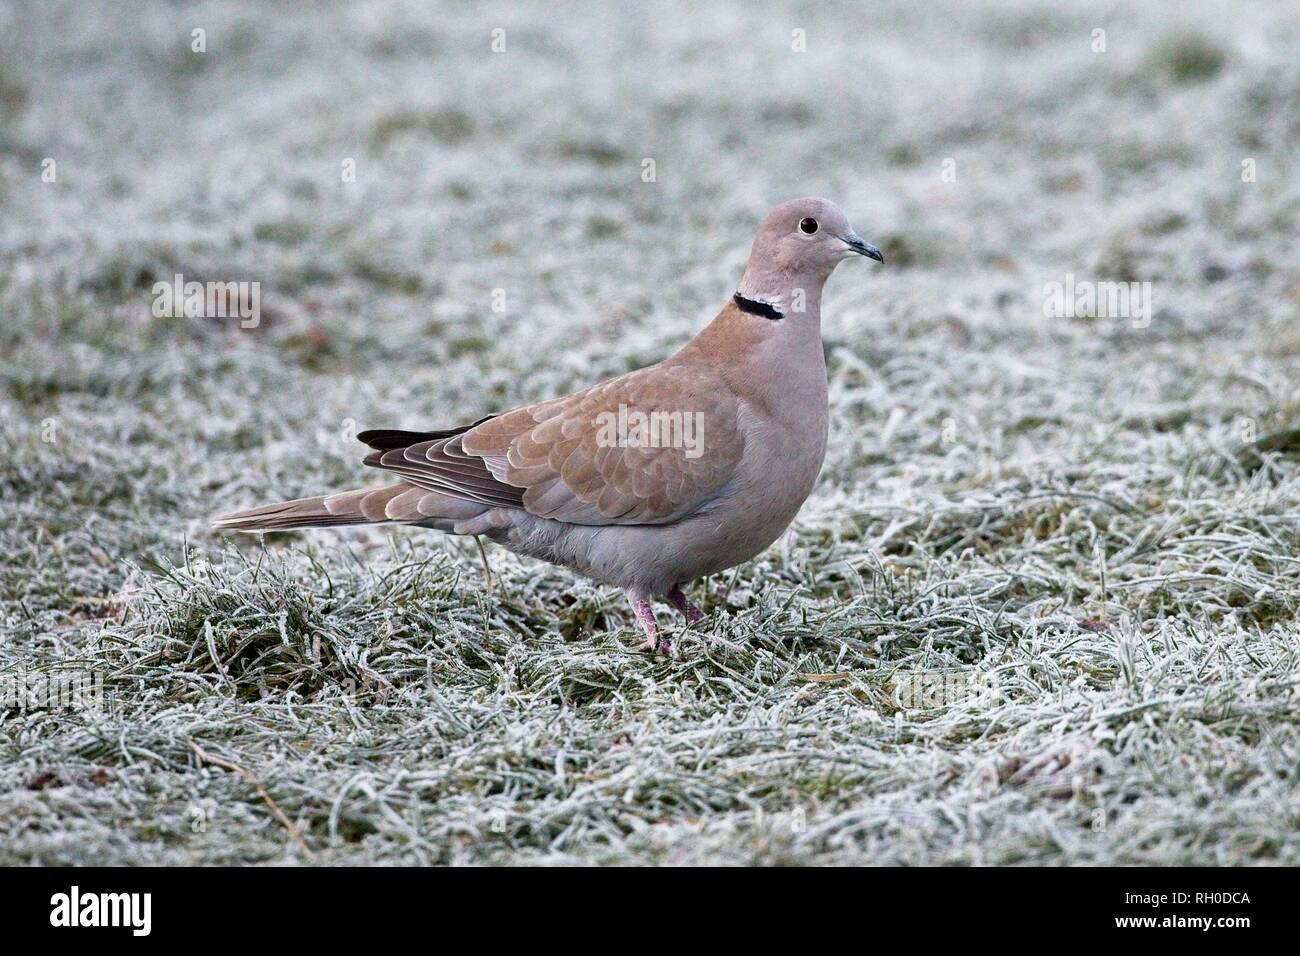 Hailsham, UK. 31st Jan, 2019. UK weather.A Collared dove (Streptopelia decaocto) struggles to find food this morning after a hard overnight frost in Hailsham, East Sussex, UK. Credit: Ed Brown/Alamy Live News - Stock Image